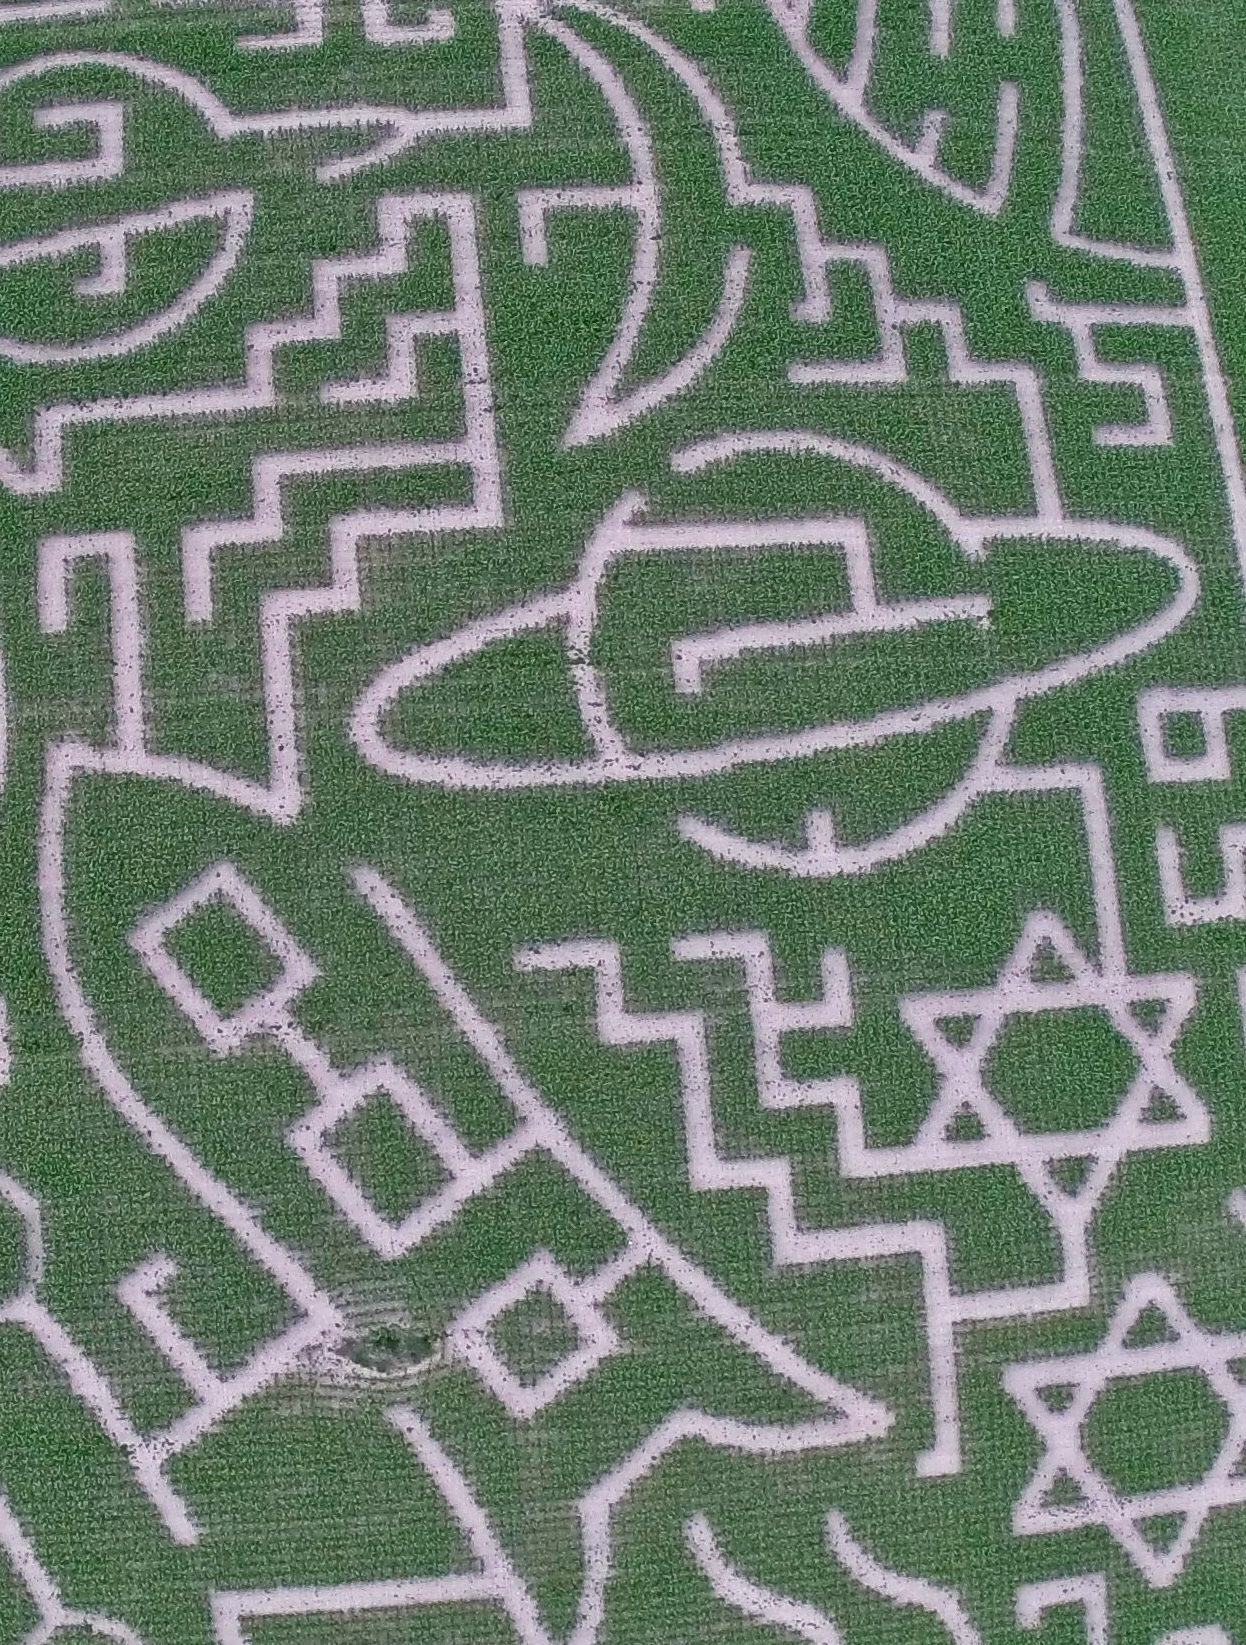 Maize maze reopens in Antsy with space theme